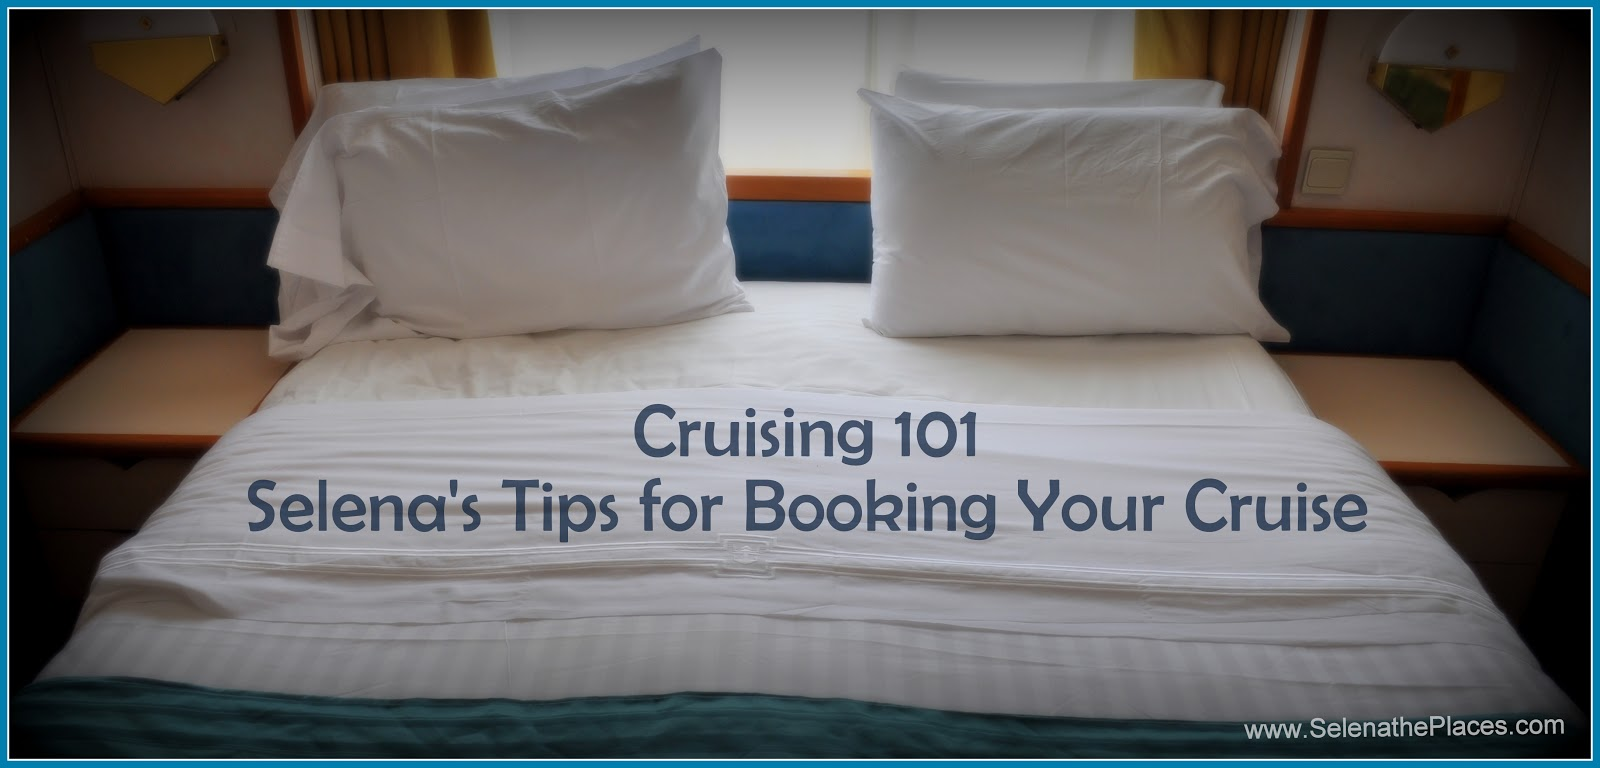 Cruising 101 Tips for Booking Your Cruise